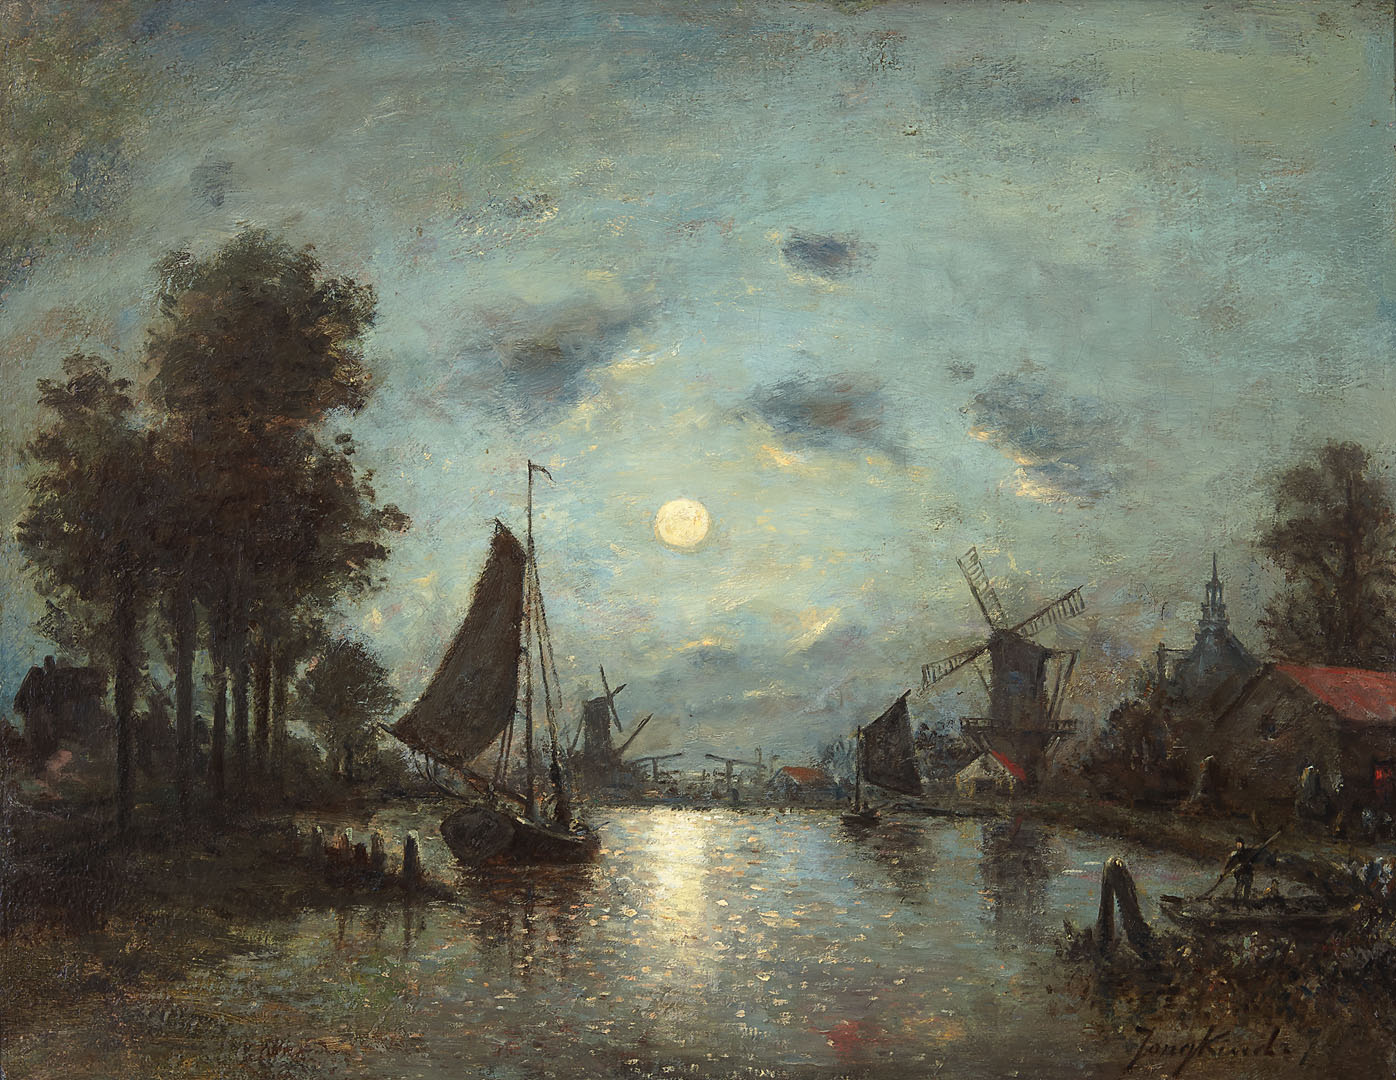 A sailing vessel in a Dutch estuary by night Johan Bartold Jongkind (1819-1891) - Kunsthandel Studio 2000